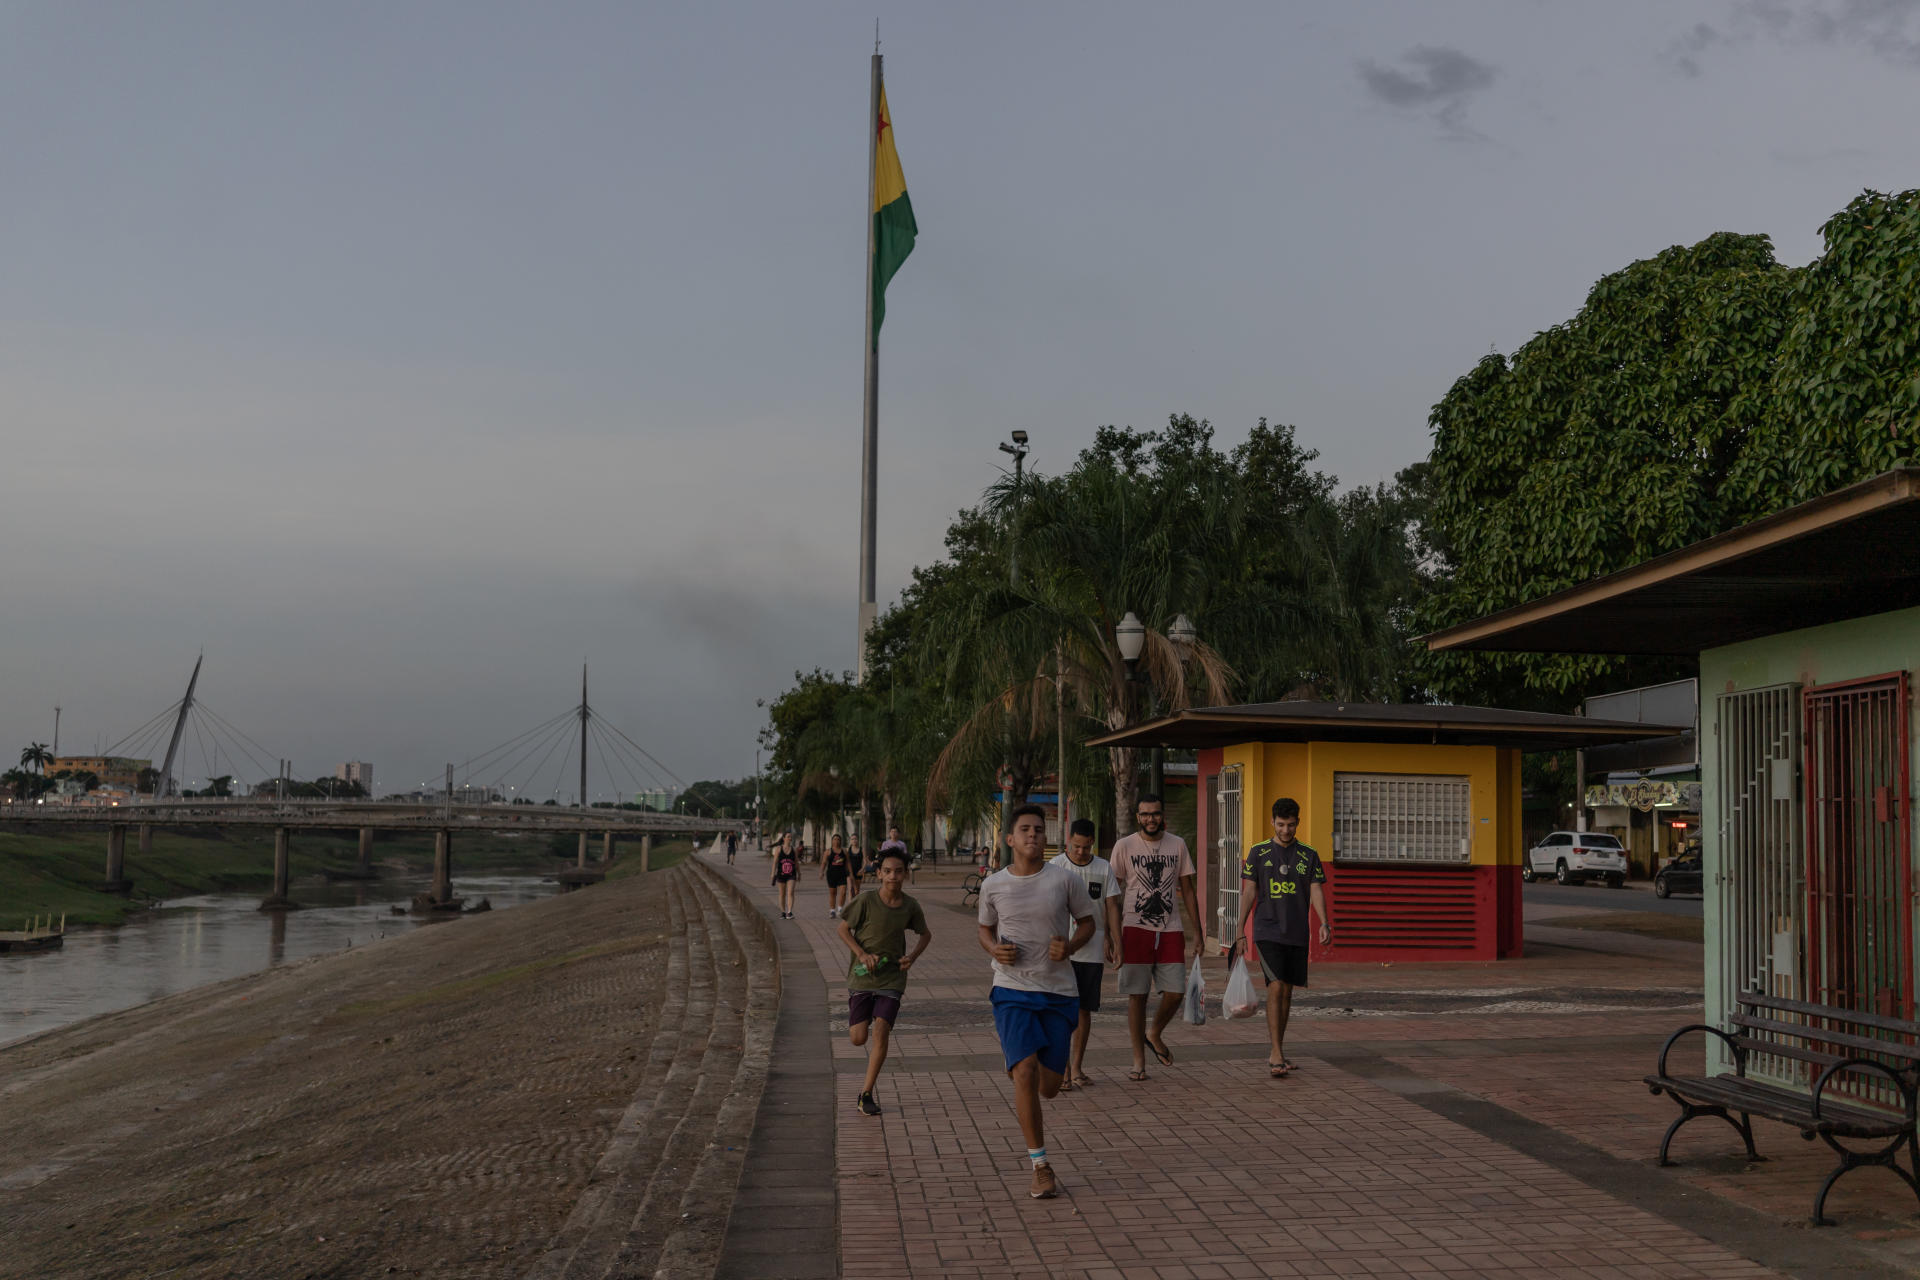 In the center of Rio Branco, the capital of Acre, on July 23, 2020.